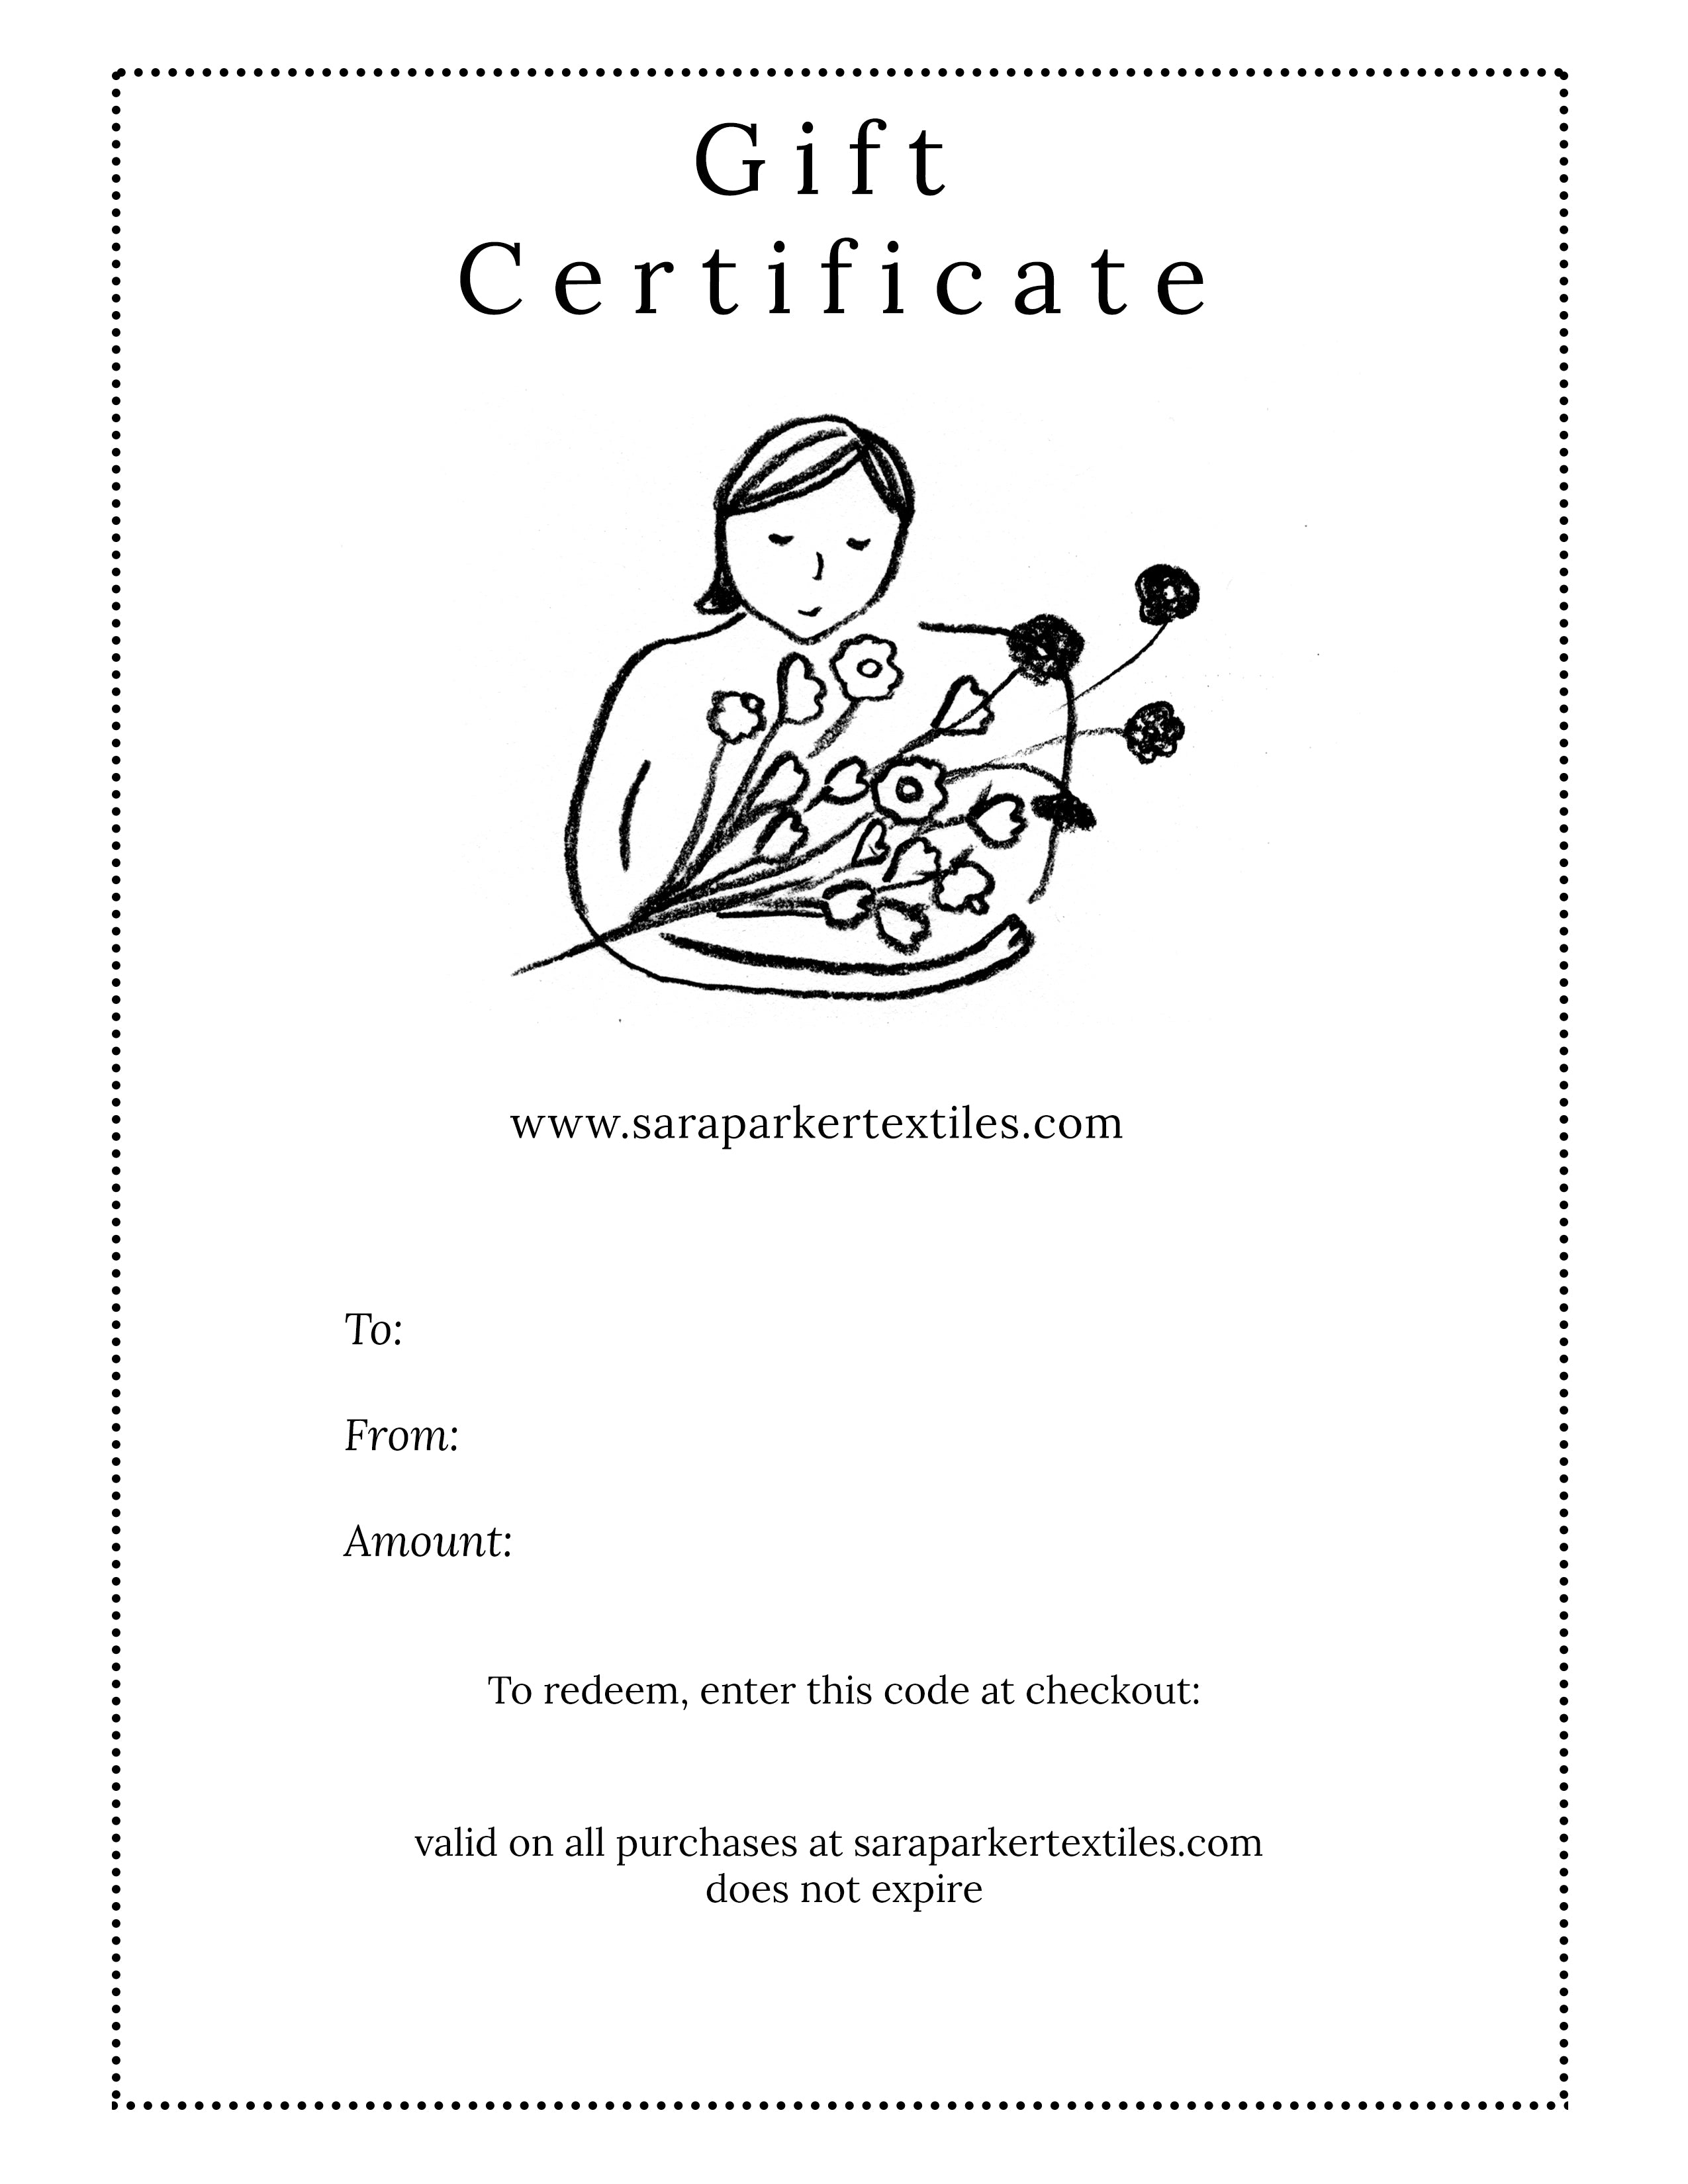 Sara Parker Textiles Gift Certificate